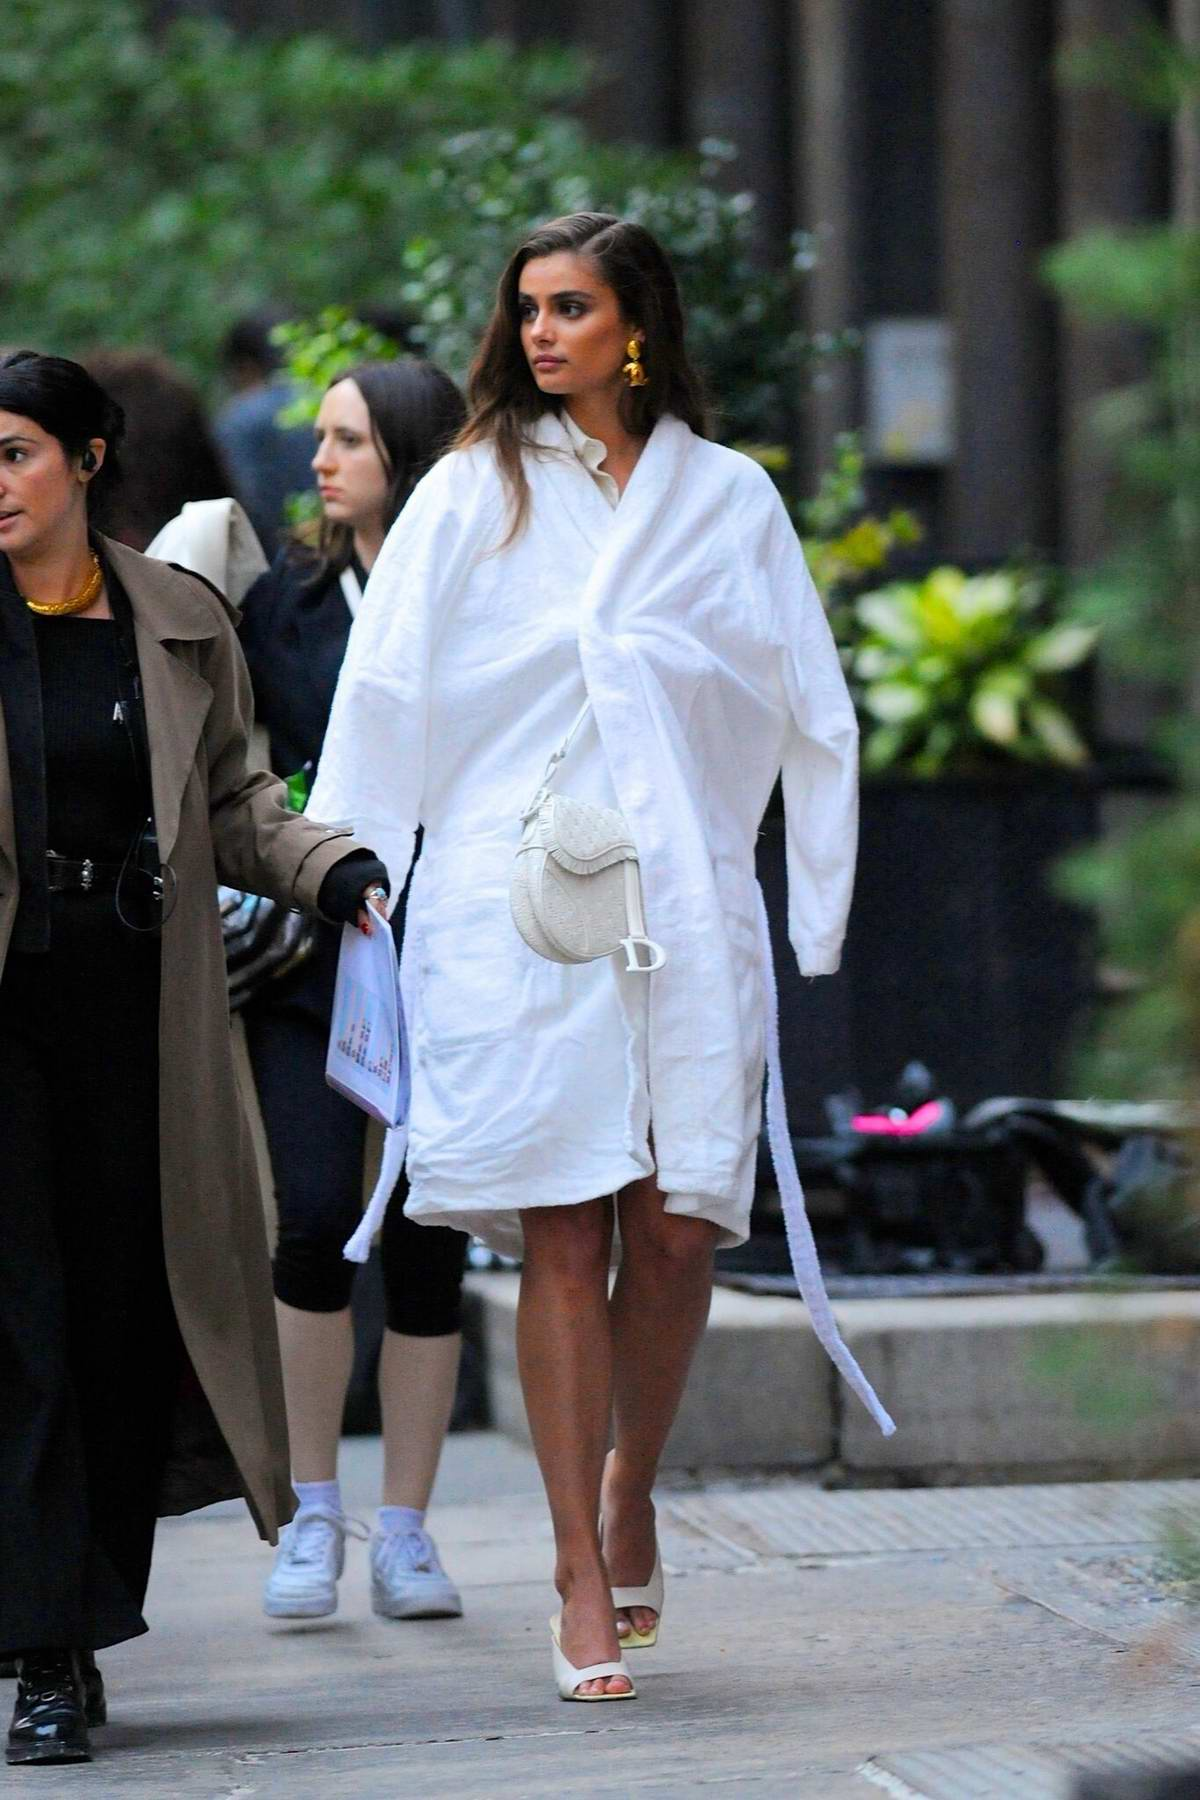 Taylor Hill stuns in all white ensemble during a photoshoot on the streets of Tribeca in New York City